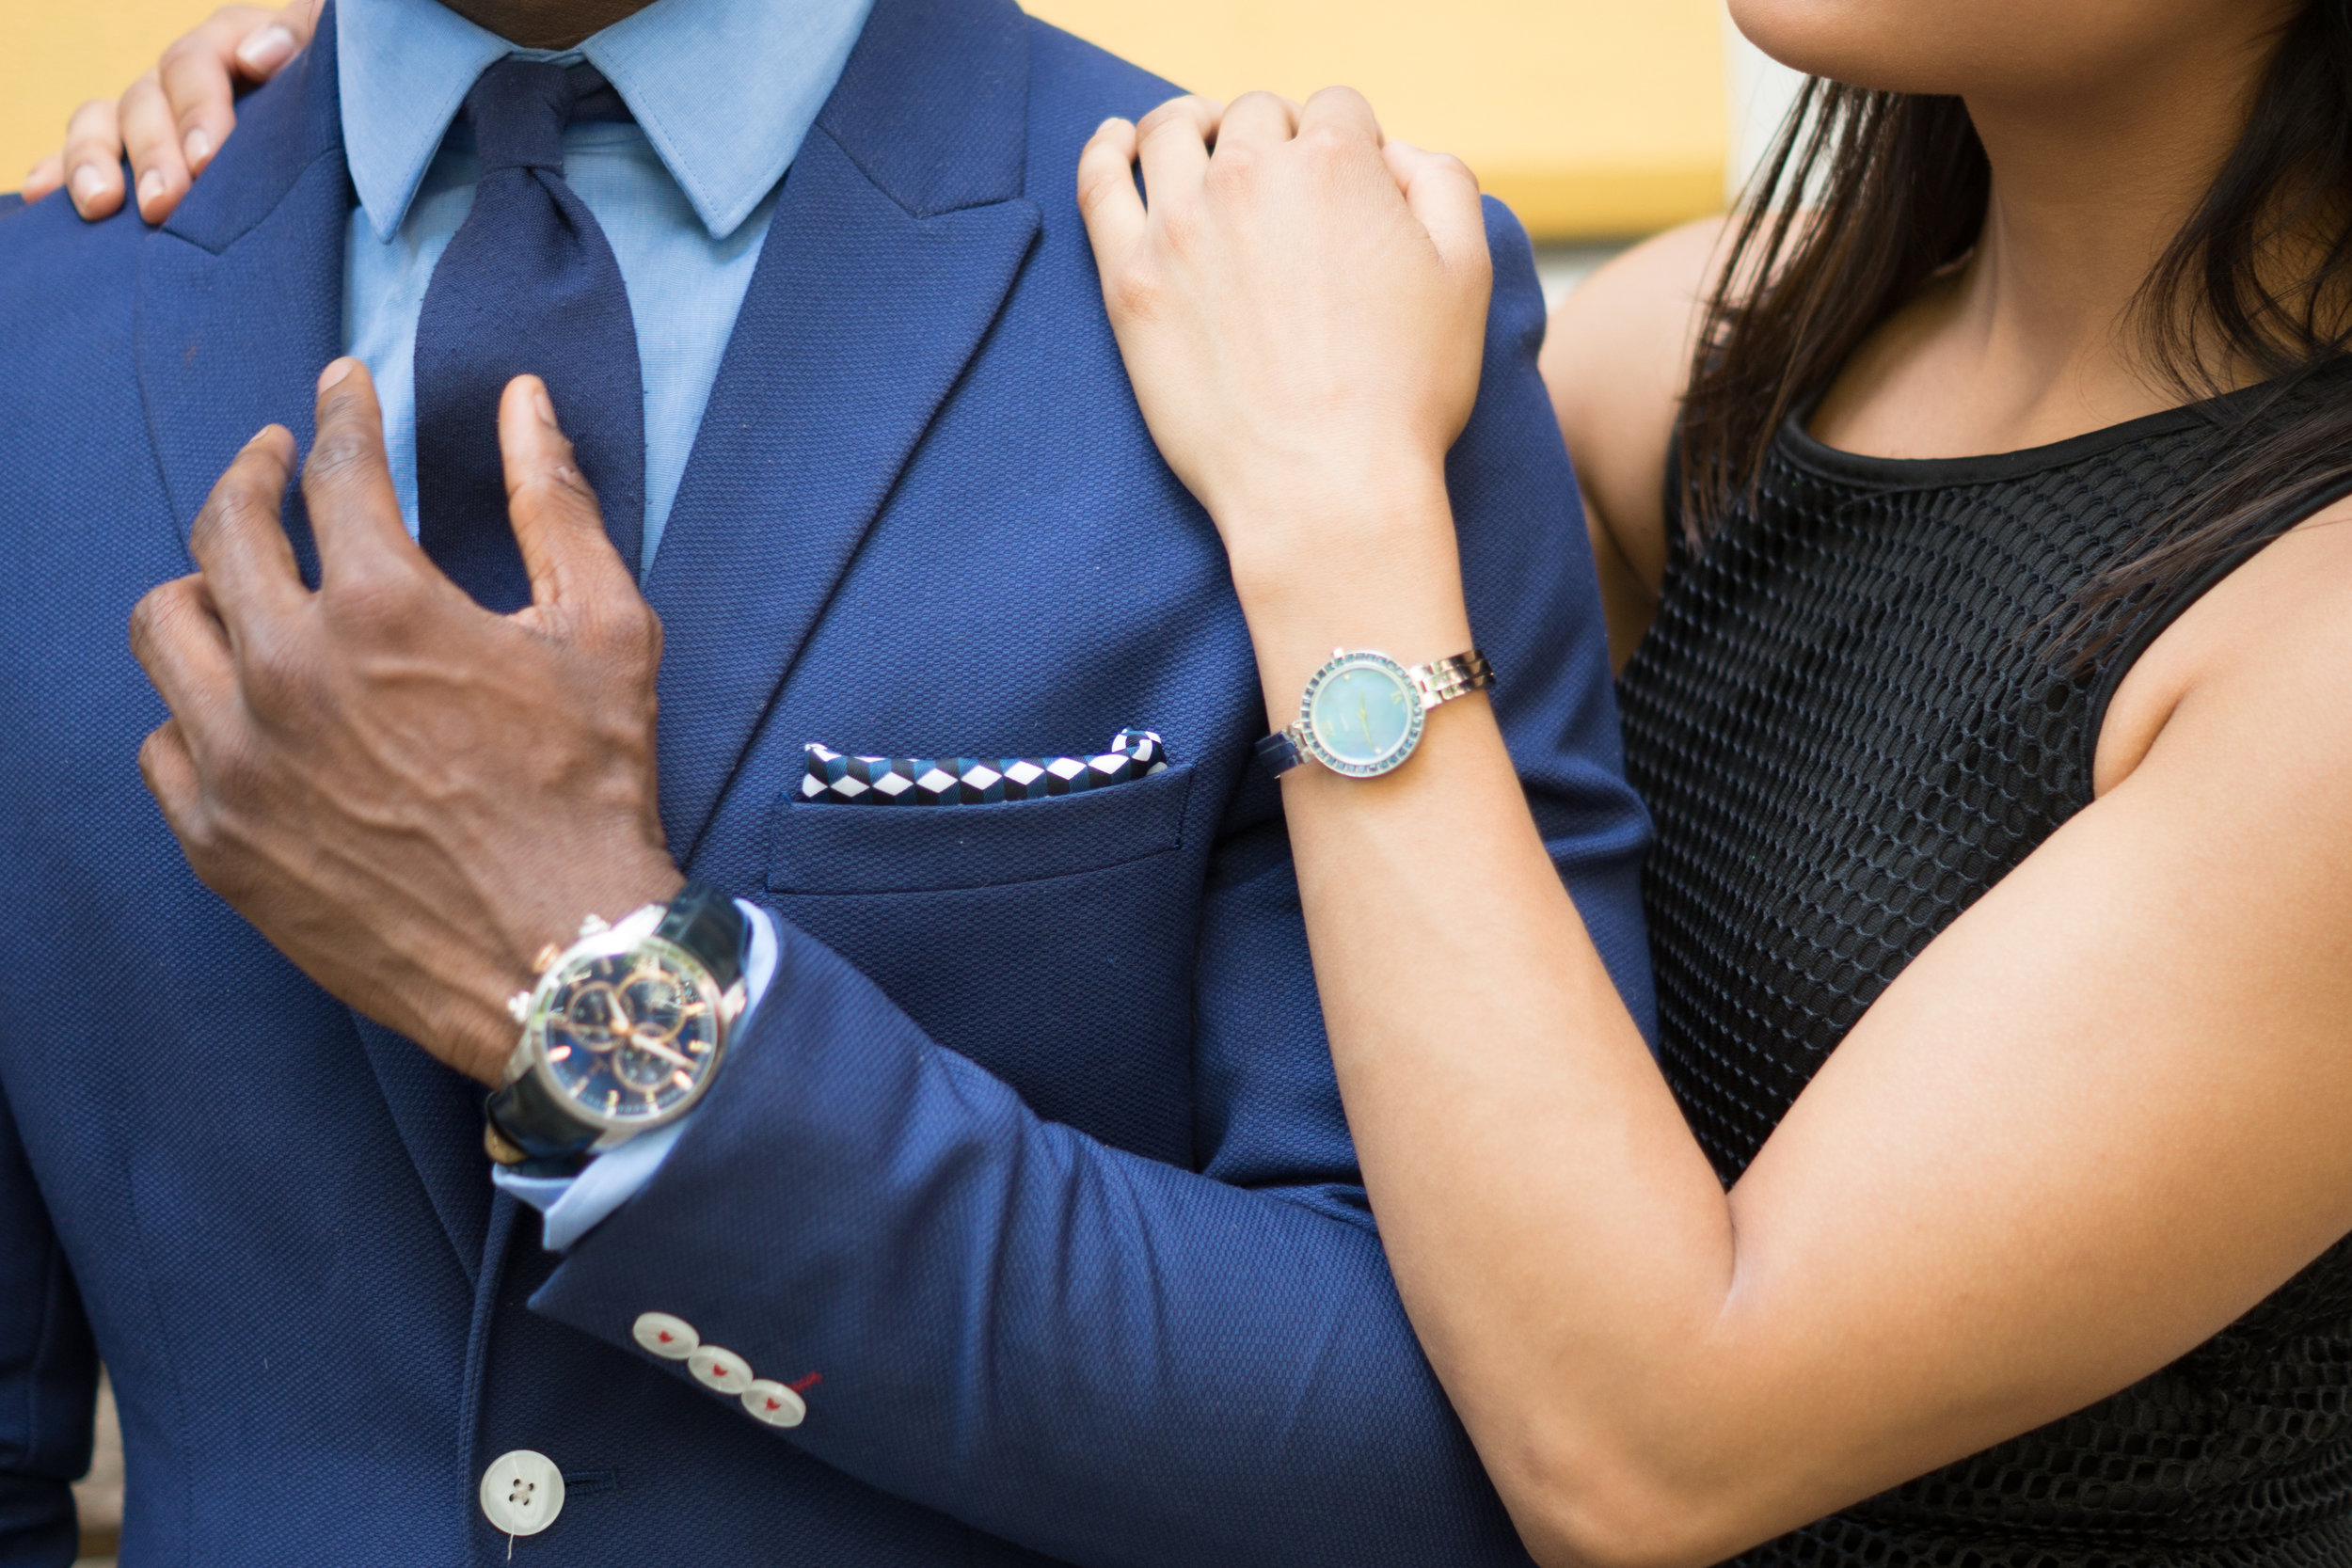 The Perfect Gift To Her Is Your Time. - check out our ladie's watches.